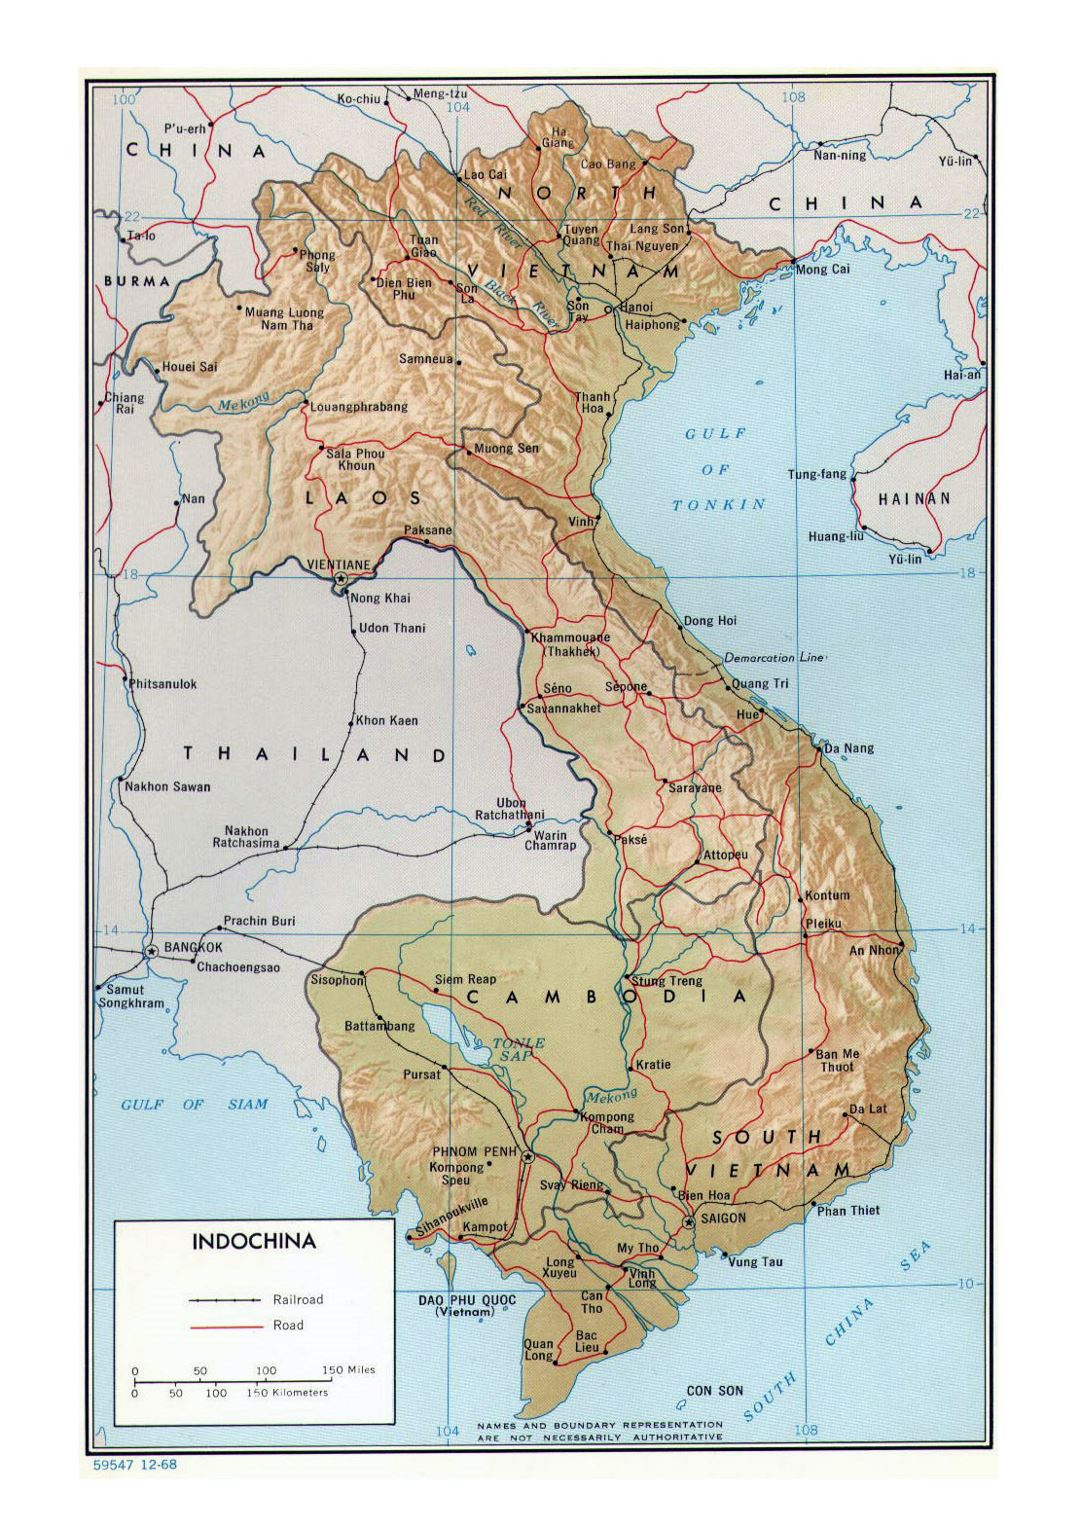 Detailed political map of Indochina with relief, roads, railroads and major cities - 1968